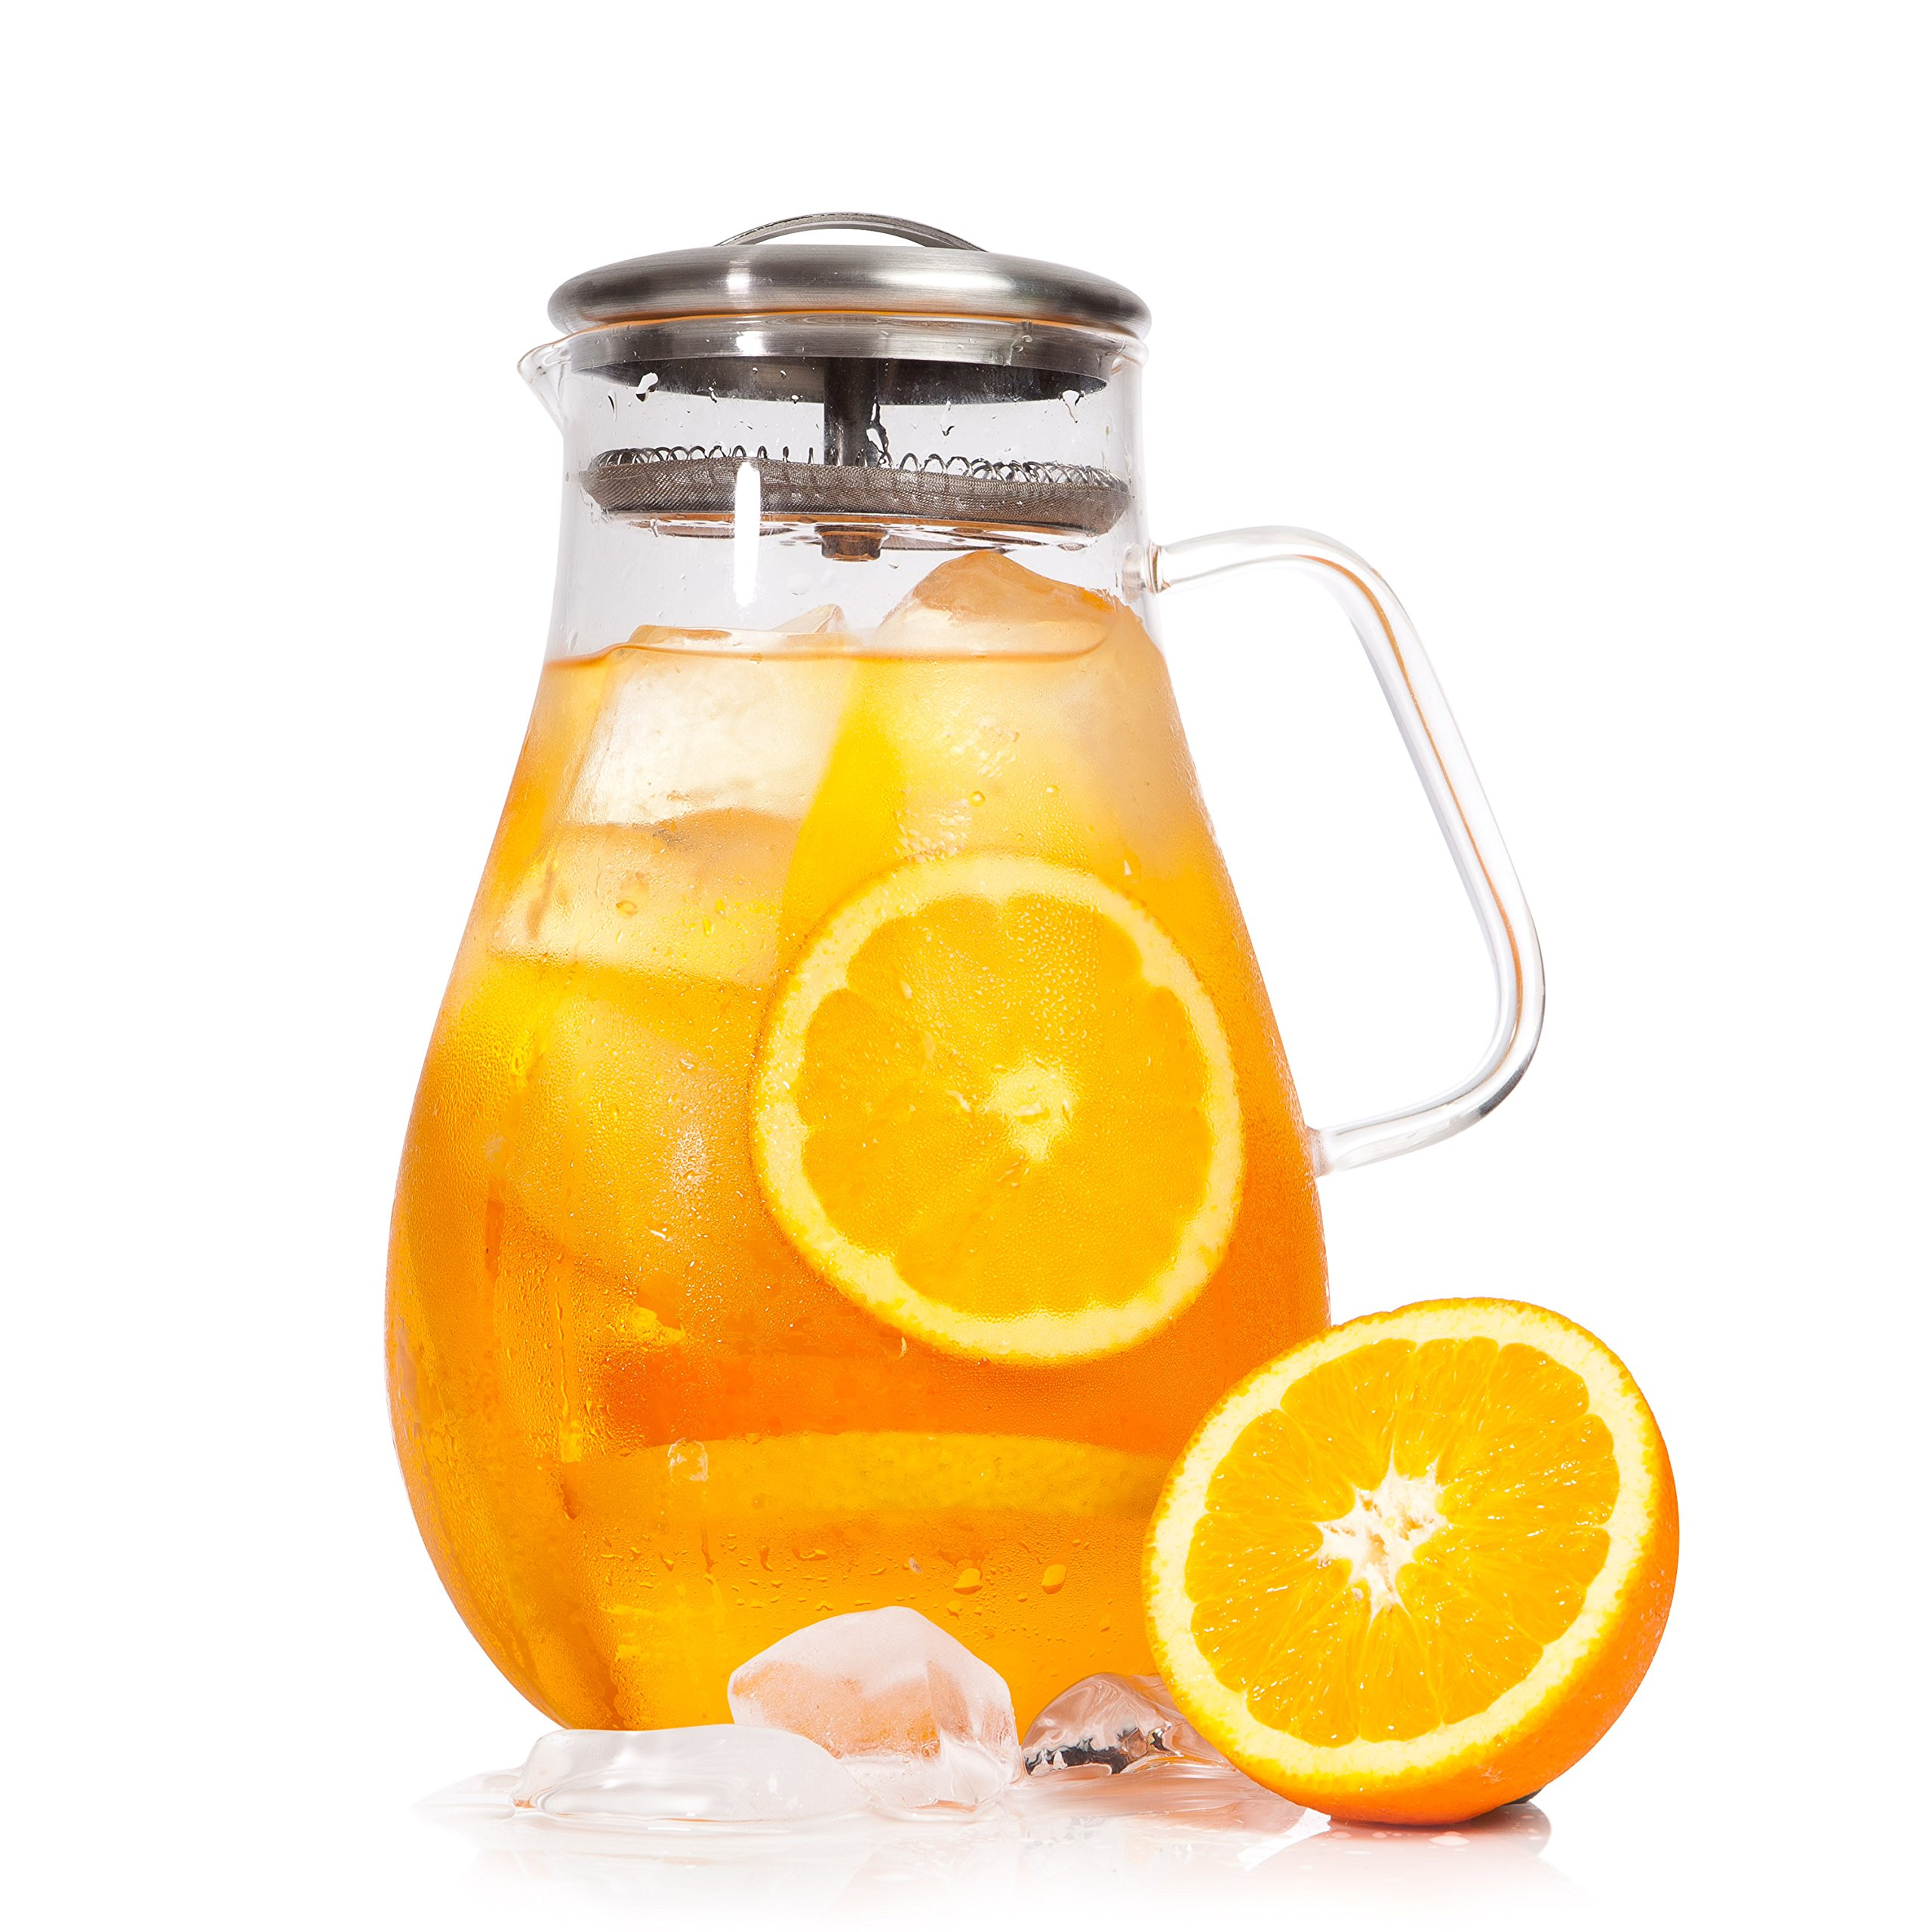 Cold/Hot Borosilicate Glass Tea Pitcher for Ice Water, Beverage, Drinks   Stainless Steel Lid   Handle & Strainer - 64 oz